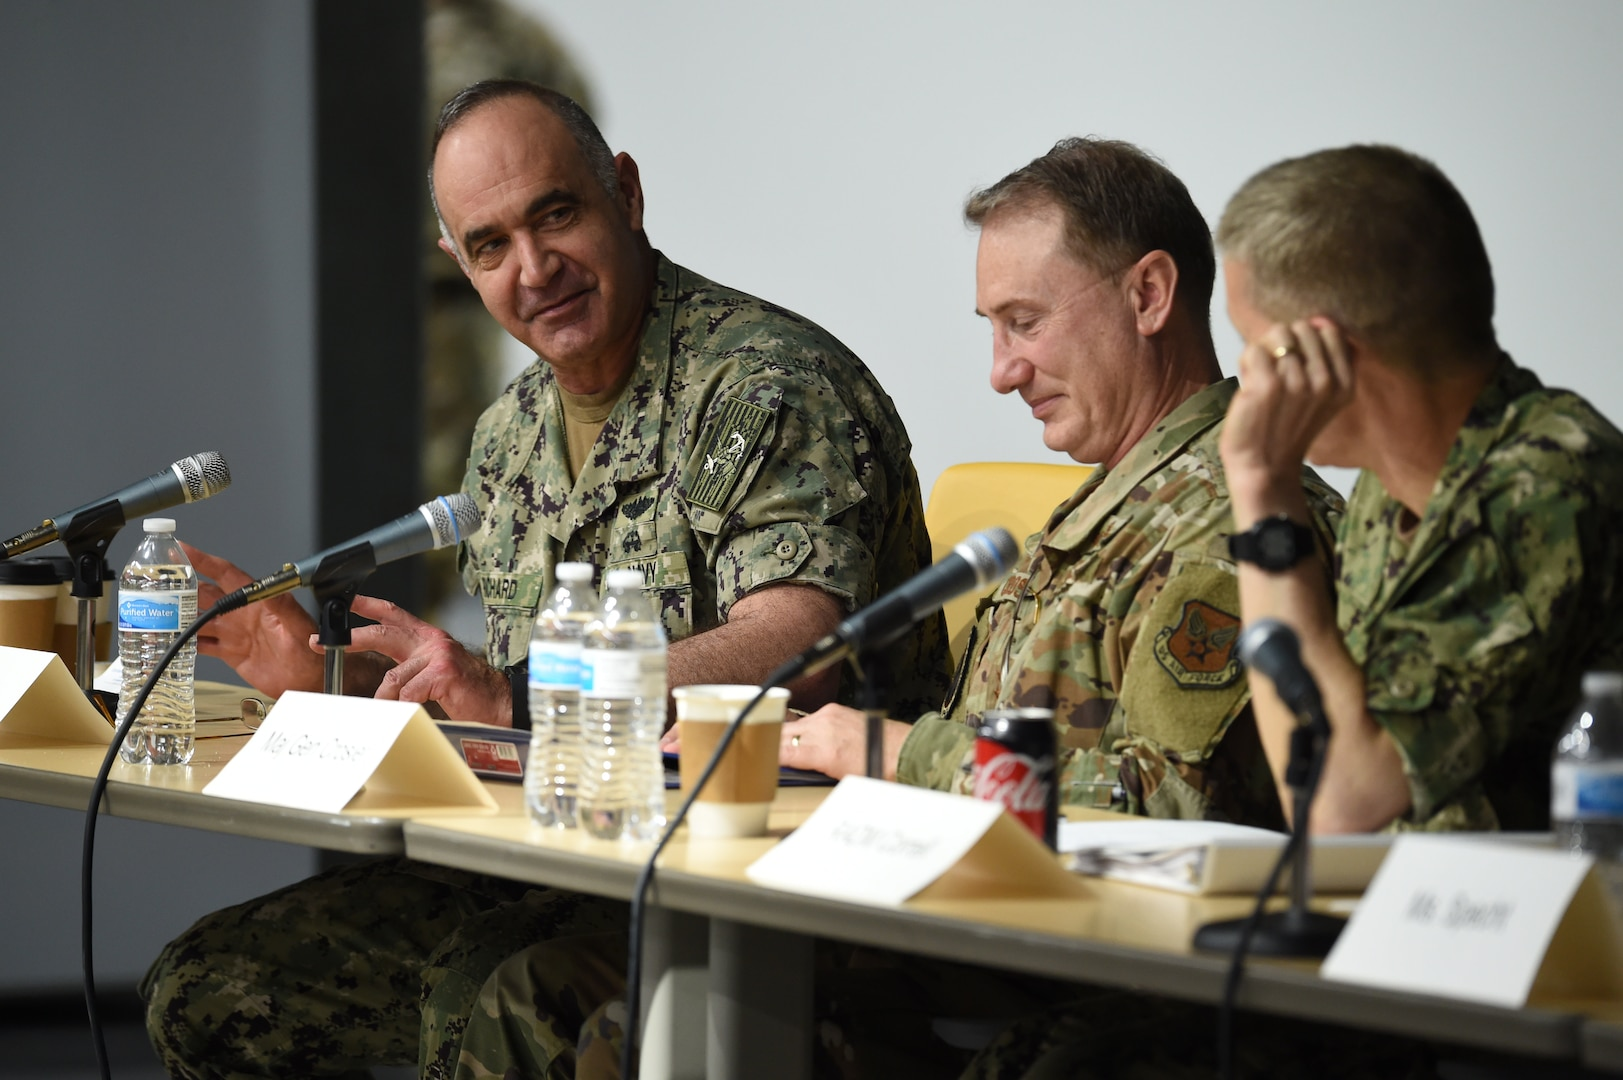 From left, U.S. Navy Adm. Charles Richard, commander of U.S. Strategic Command (USSTRATCOM), U.S. Air Force Maj. Gen. Clinton Crosier, director of space force planning at the office of the Chief of Space Operations, and U.S. Navy Rear Adm. Richard Correll, USSTRATCOM director of plans and policy, participate in a tabletop exercise during the 2020 Deterrence and Assurance Academic Alliance Conference at Iowa State University in Ames, Iowa, March 12, 2020. Over 100 participants engaged in a four-hour USSTRATCOM-led wargame designed to apply students' knowledge of U.S. instruments of national power, as they developed solutions to a simulated crisis strategic decision-making scenario.